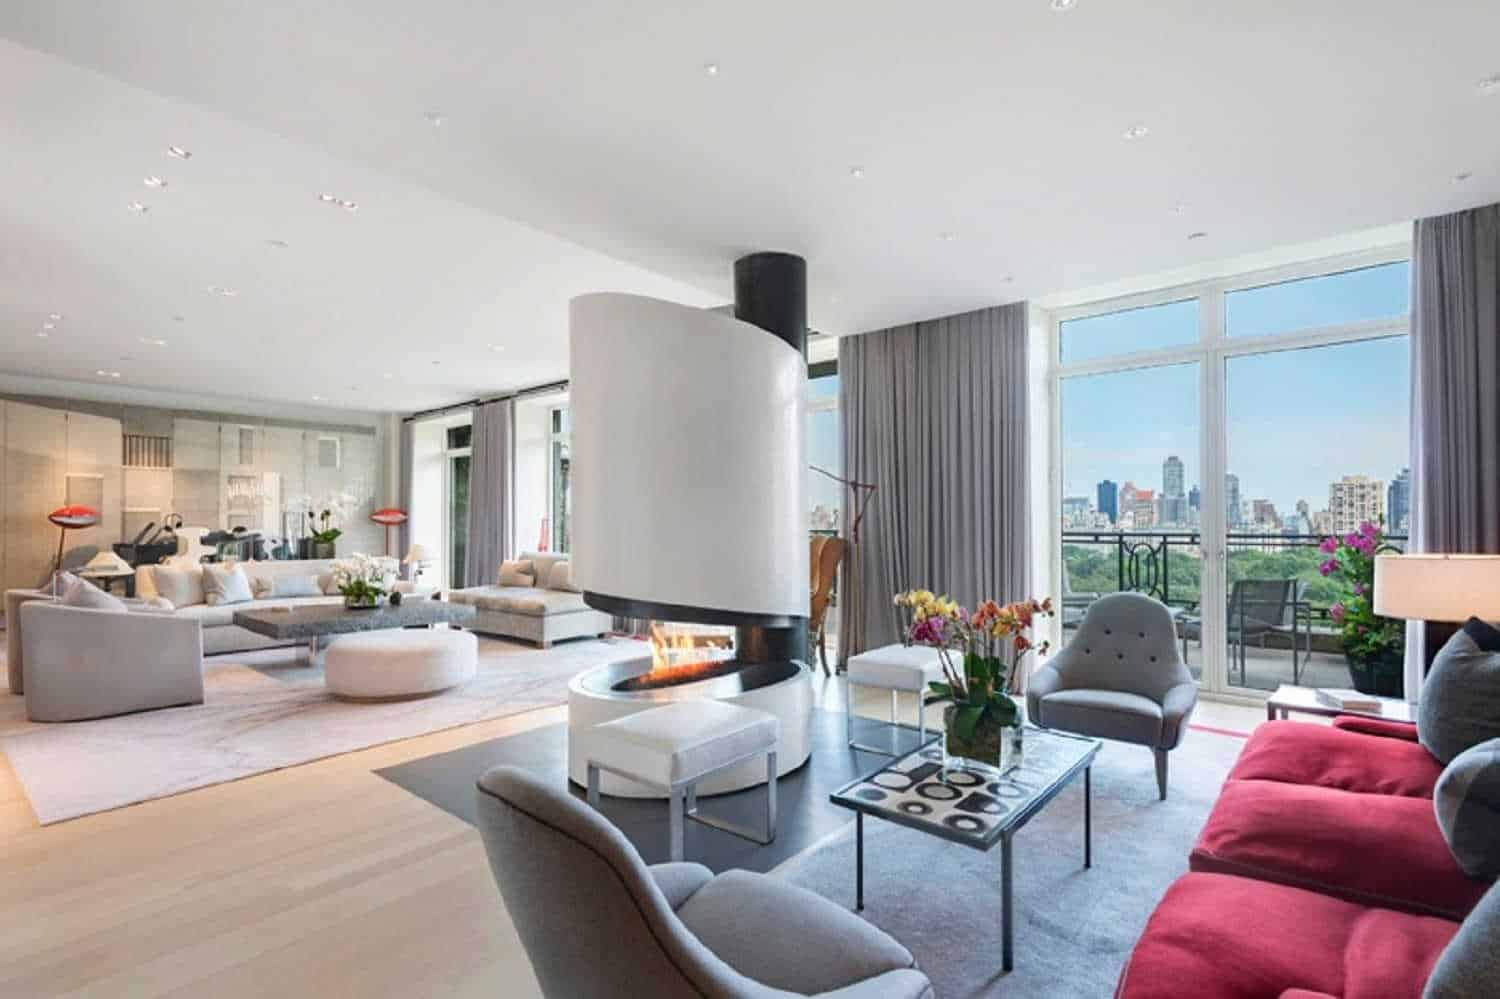 Living rooms with fireplaces - 9sting_15 Central Park West